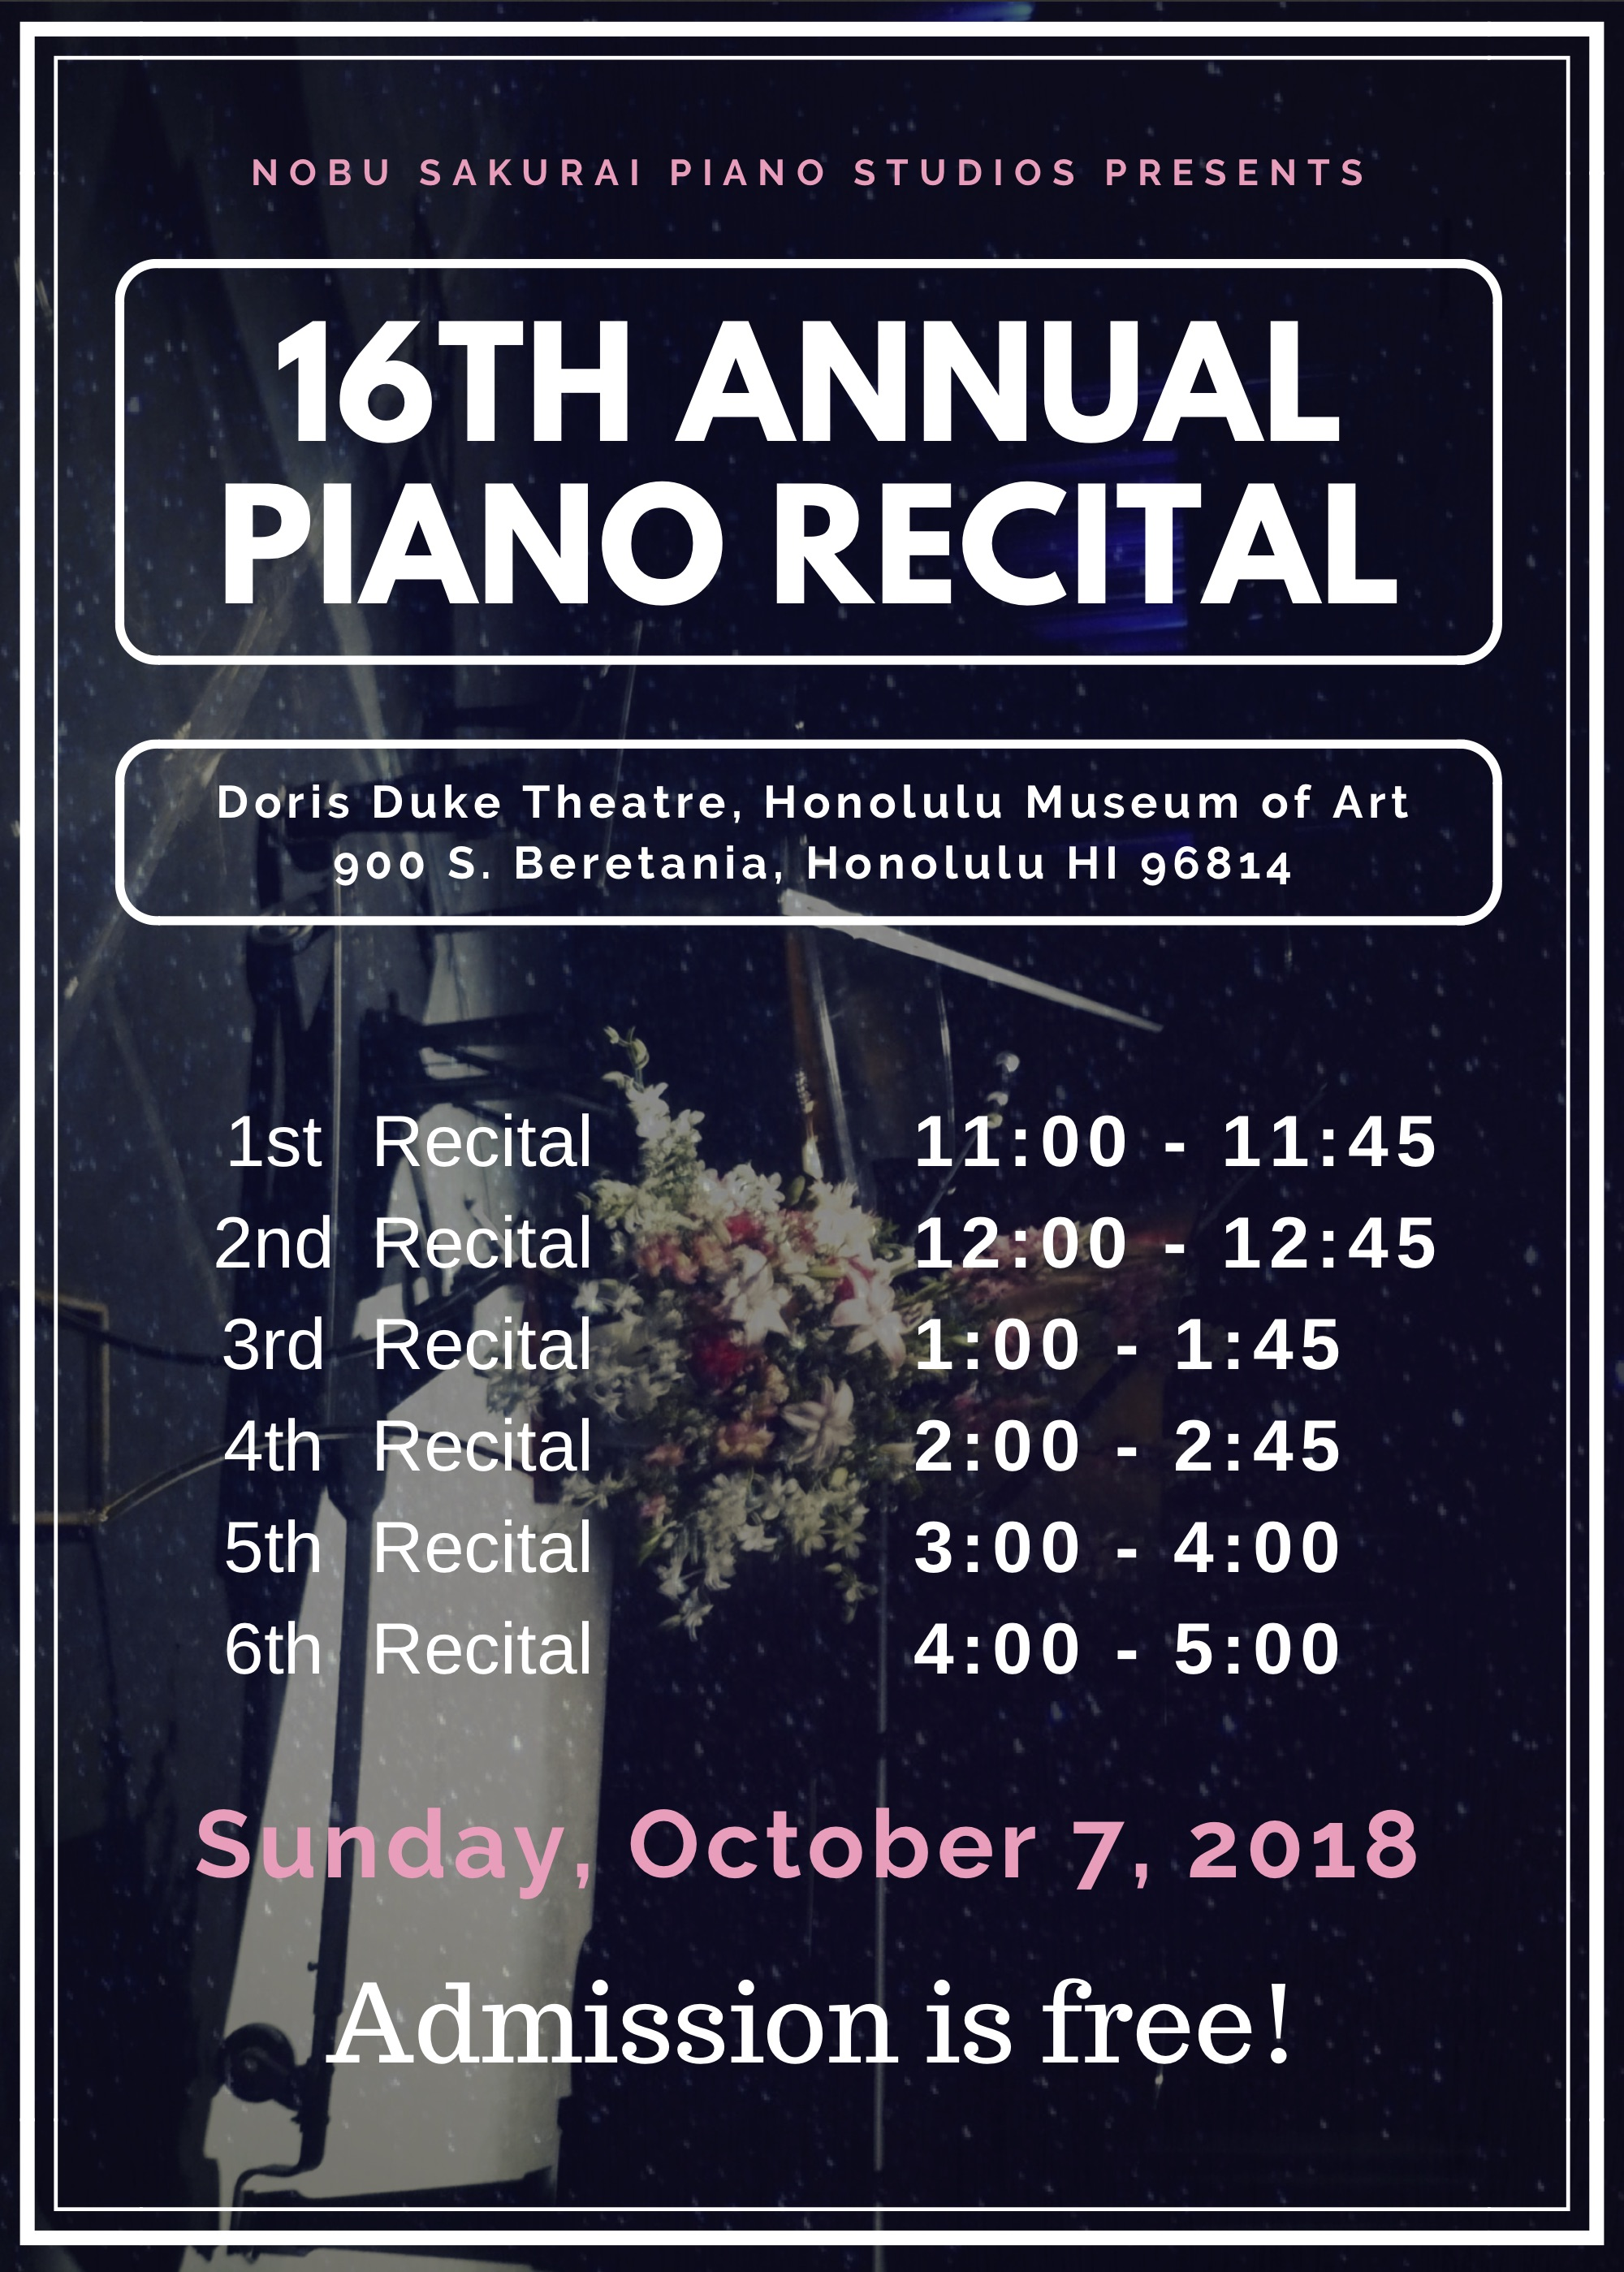 16th Annual Nobu Sakurai Piano Studios Recital!